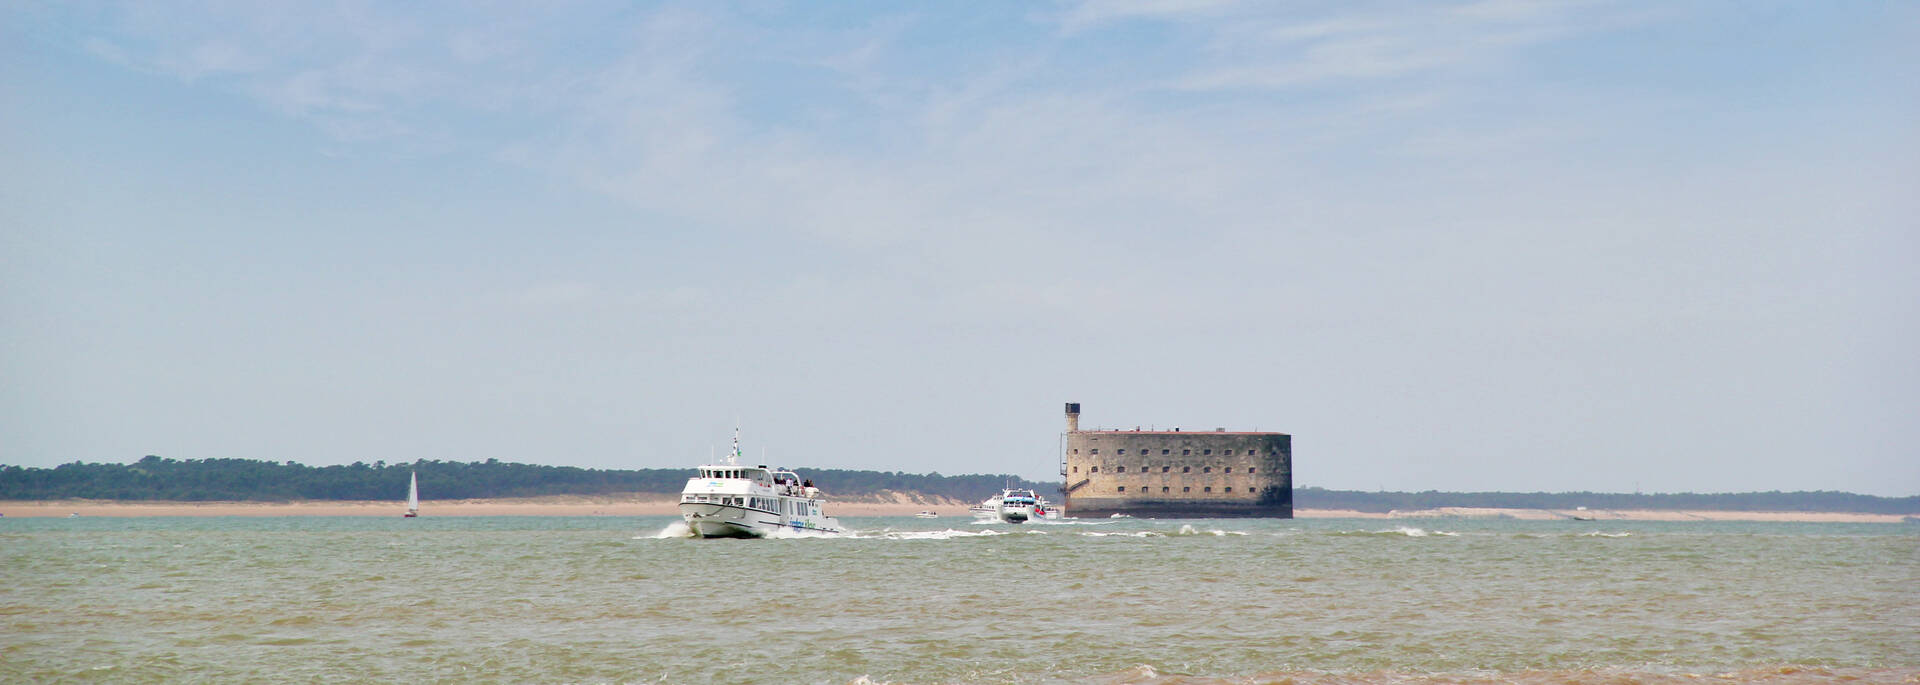 From Fouras, Rochefort or Port-des-Barques, embark on a cruise to Aix Island and cross roads with the Fort Boyard - © Office de tourisme rochefort Océan